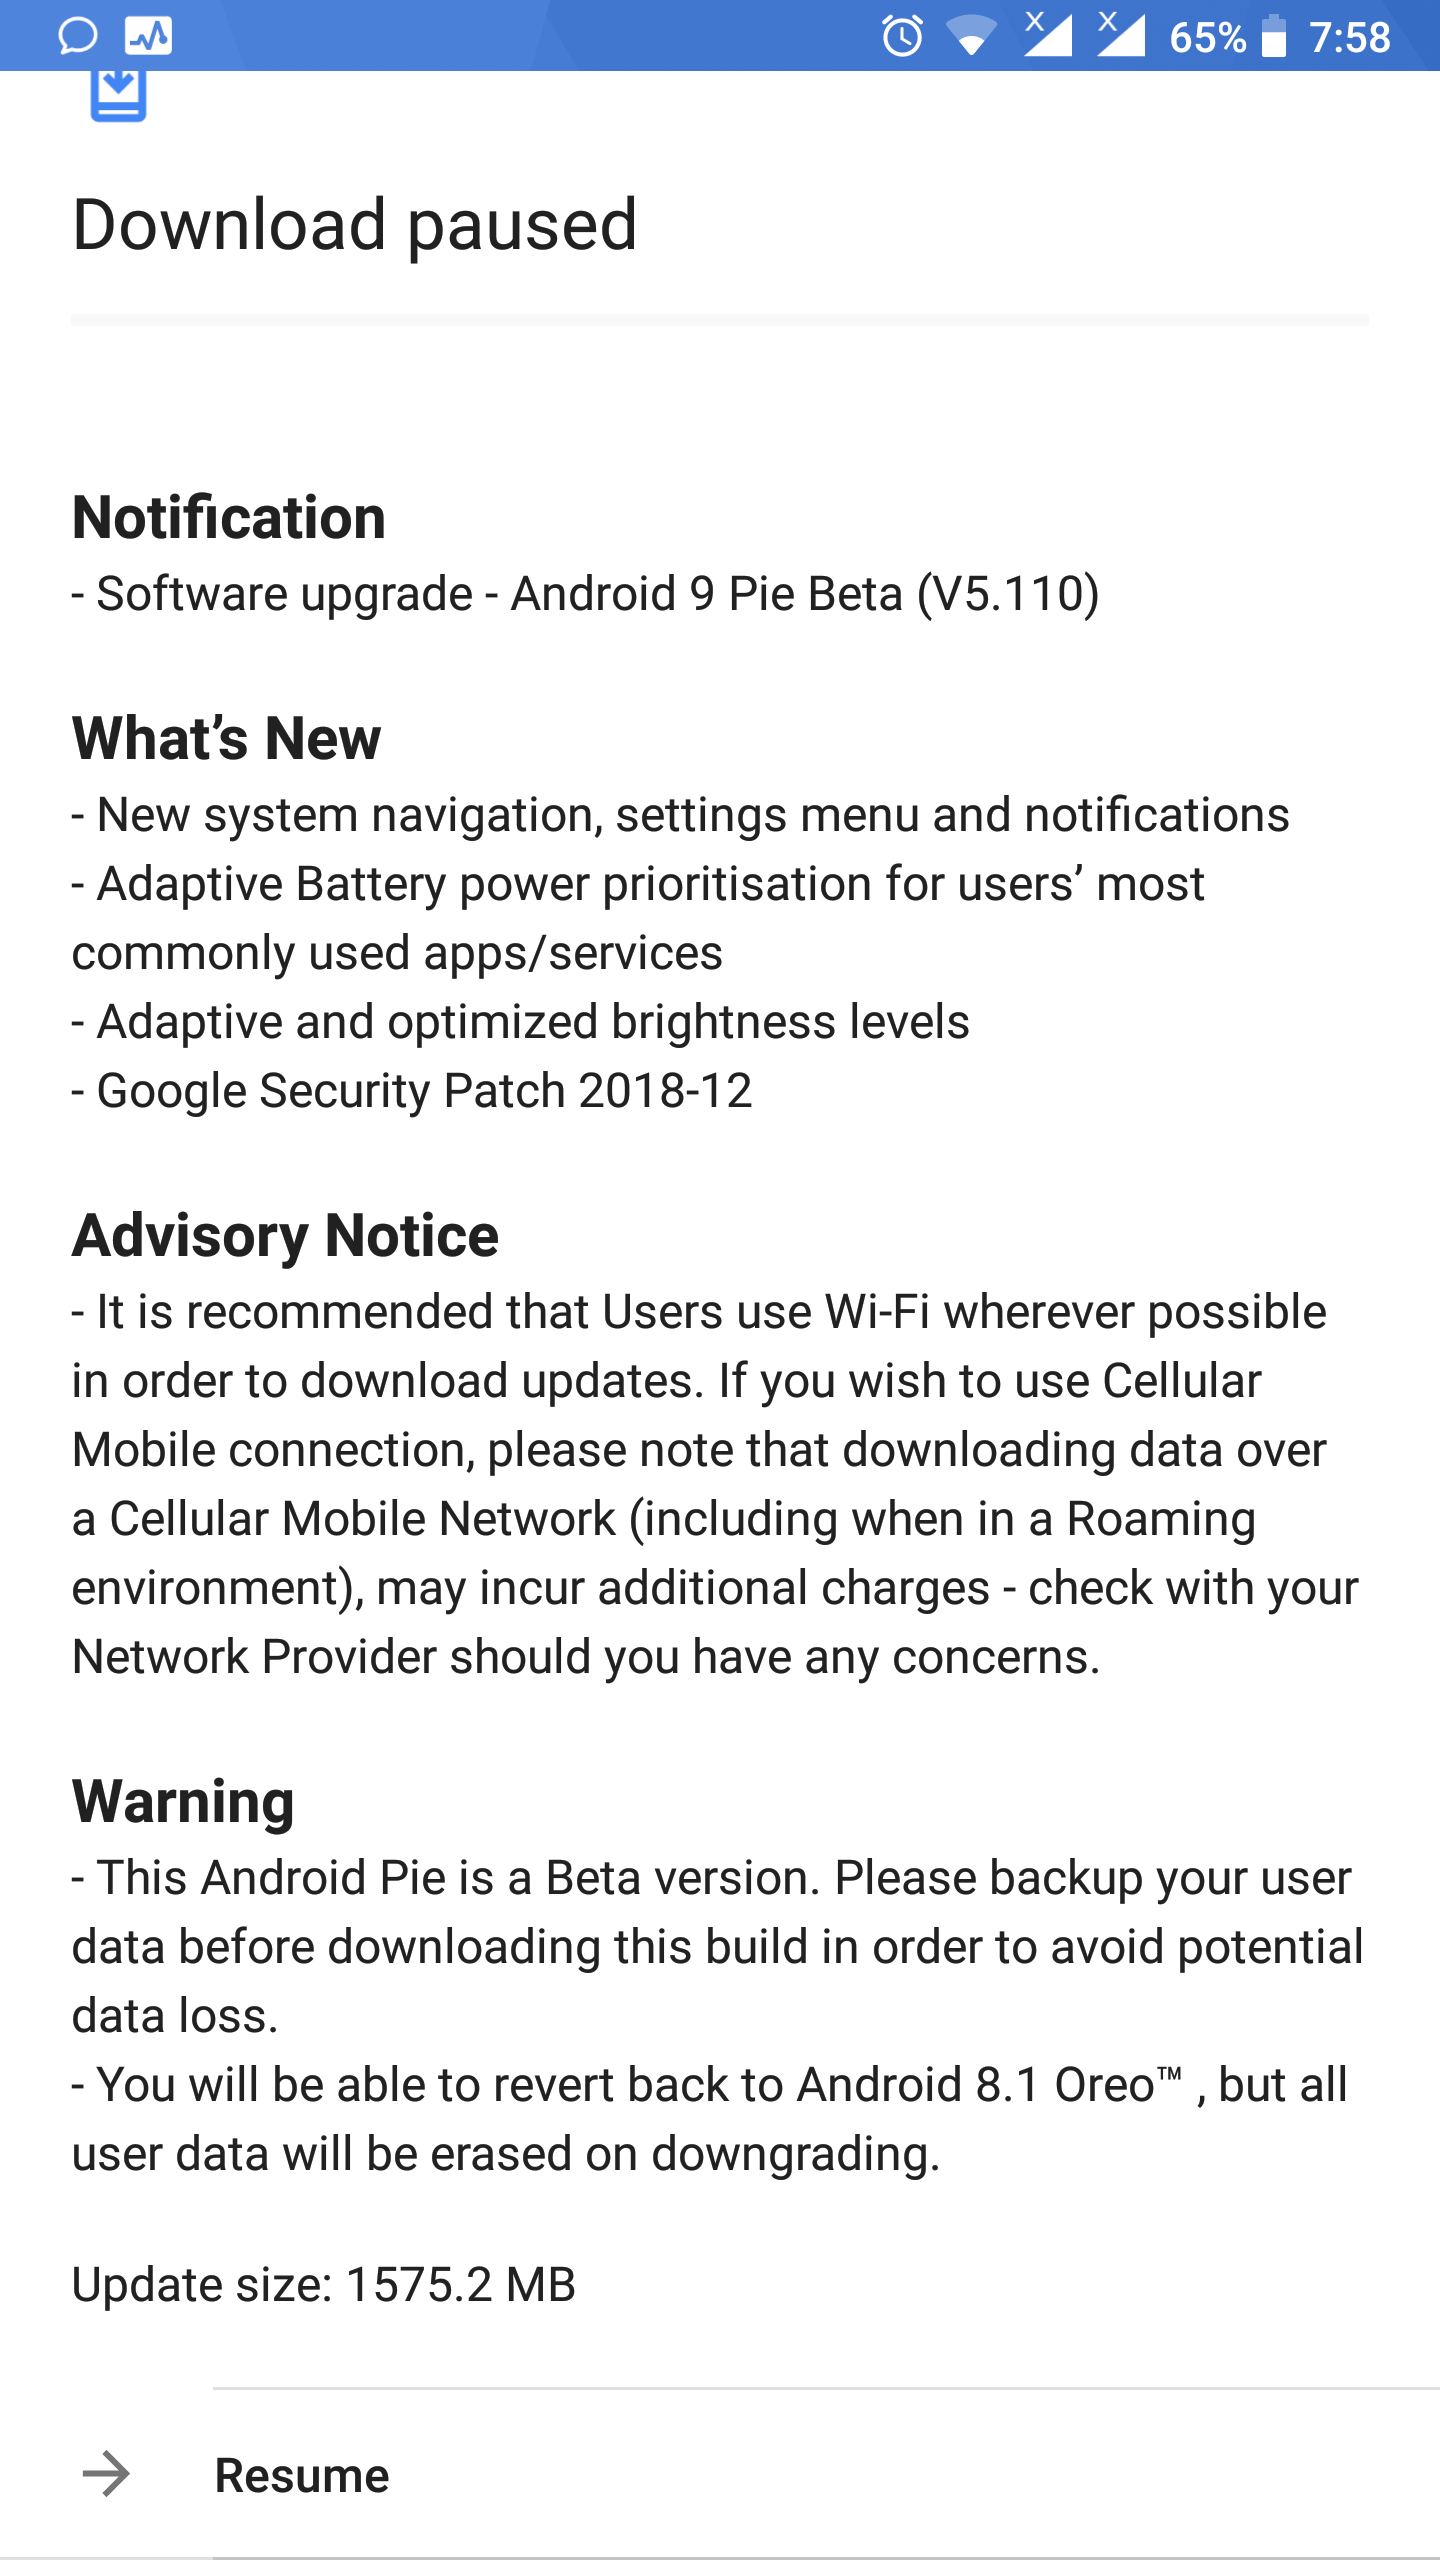 Ta-1004 still waiting for pie update - Page 2 — Nokia phones